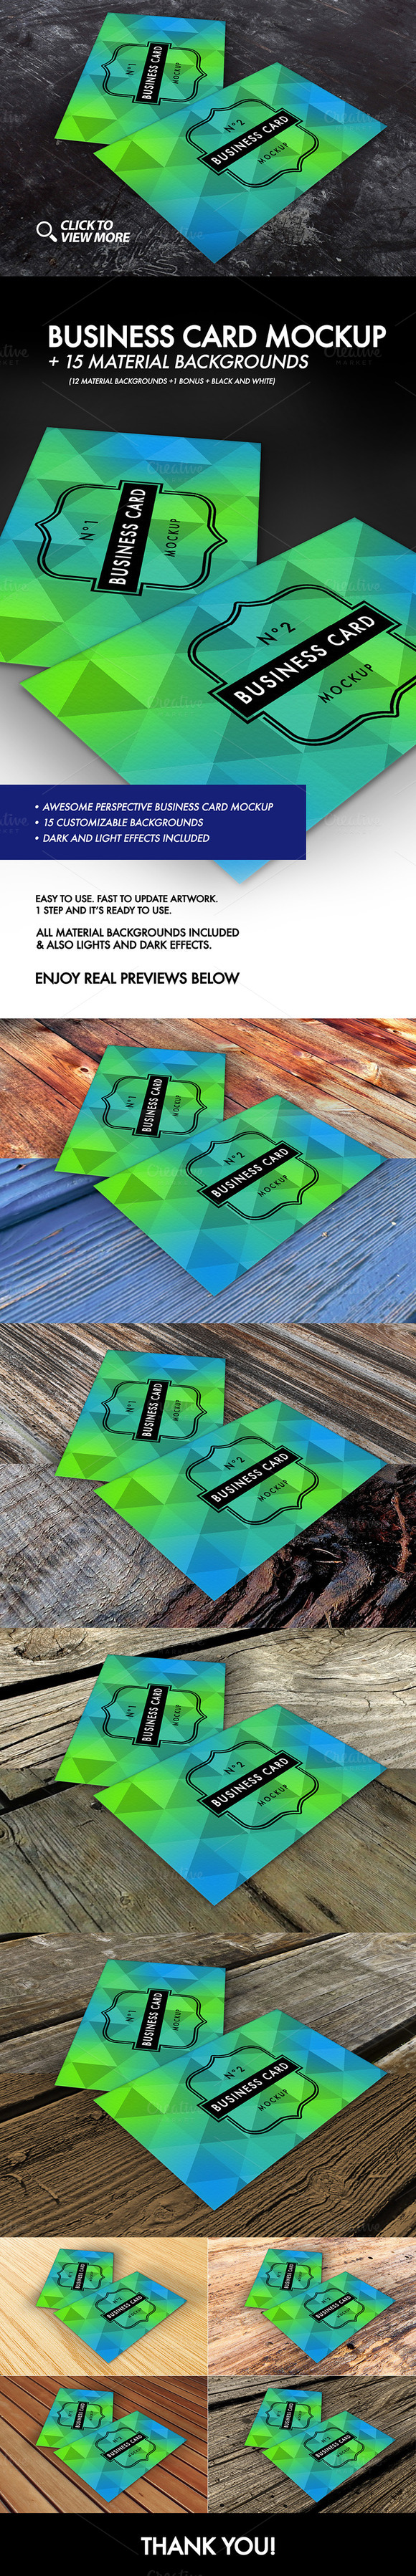 Business Card Mockup N2